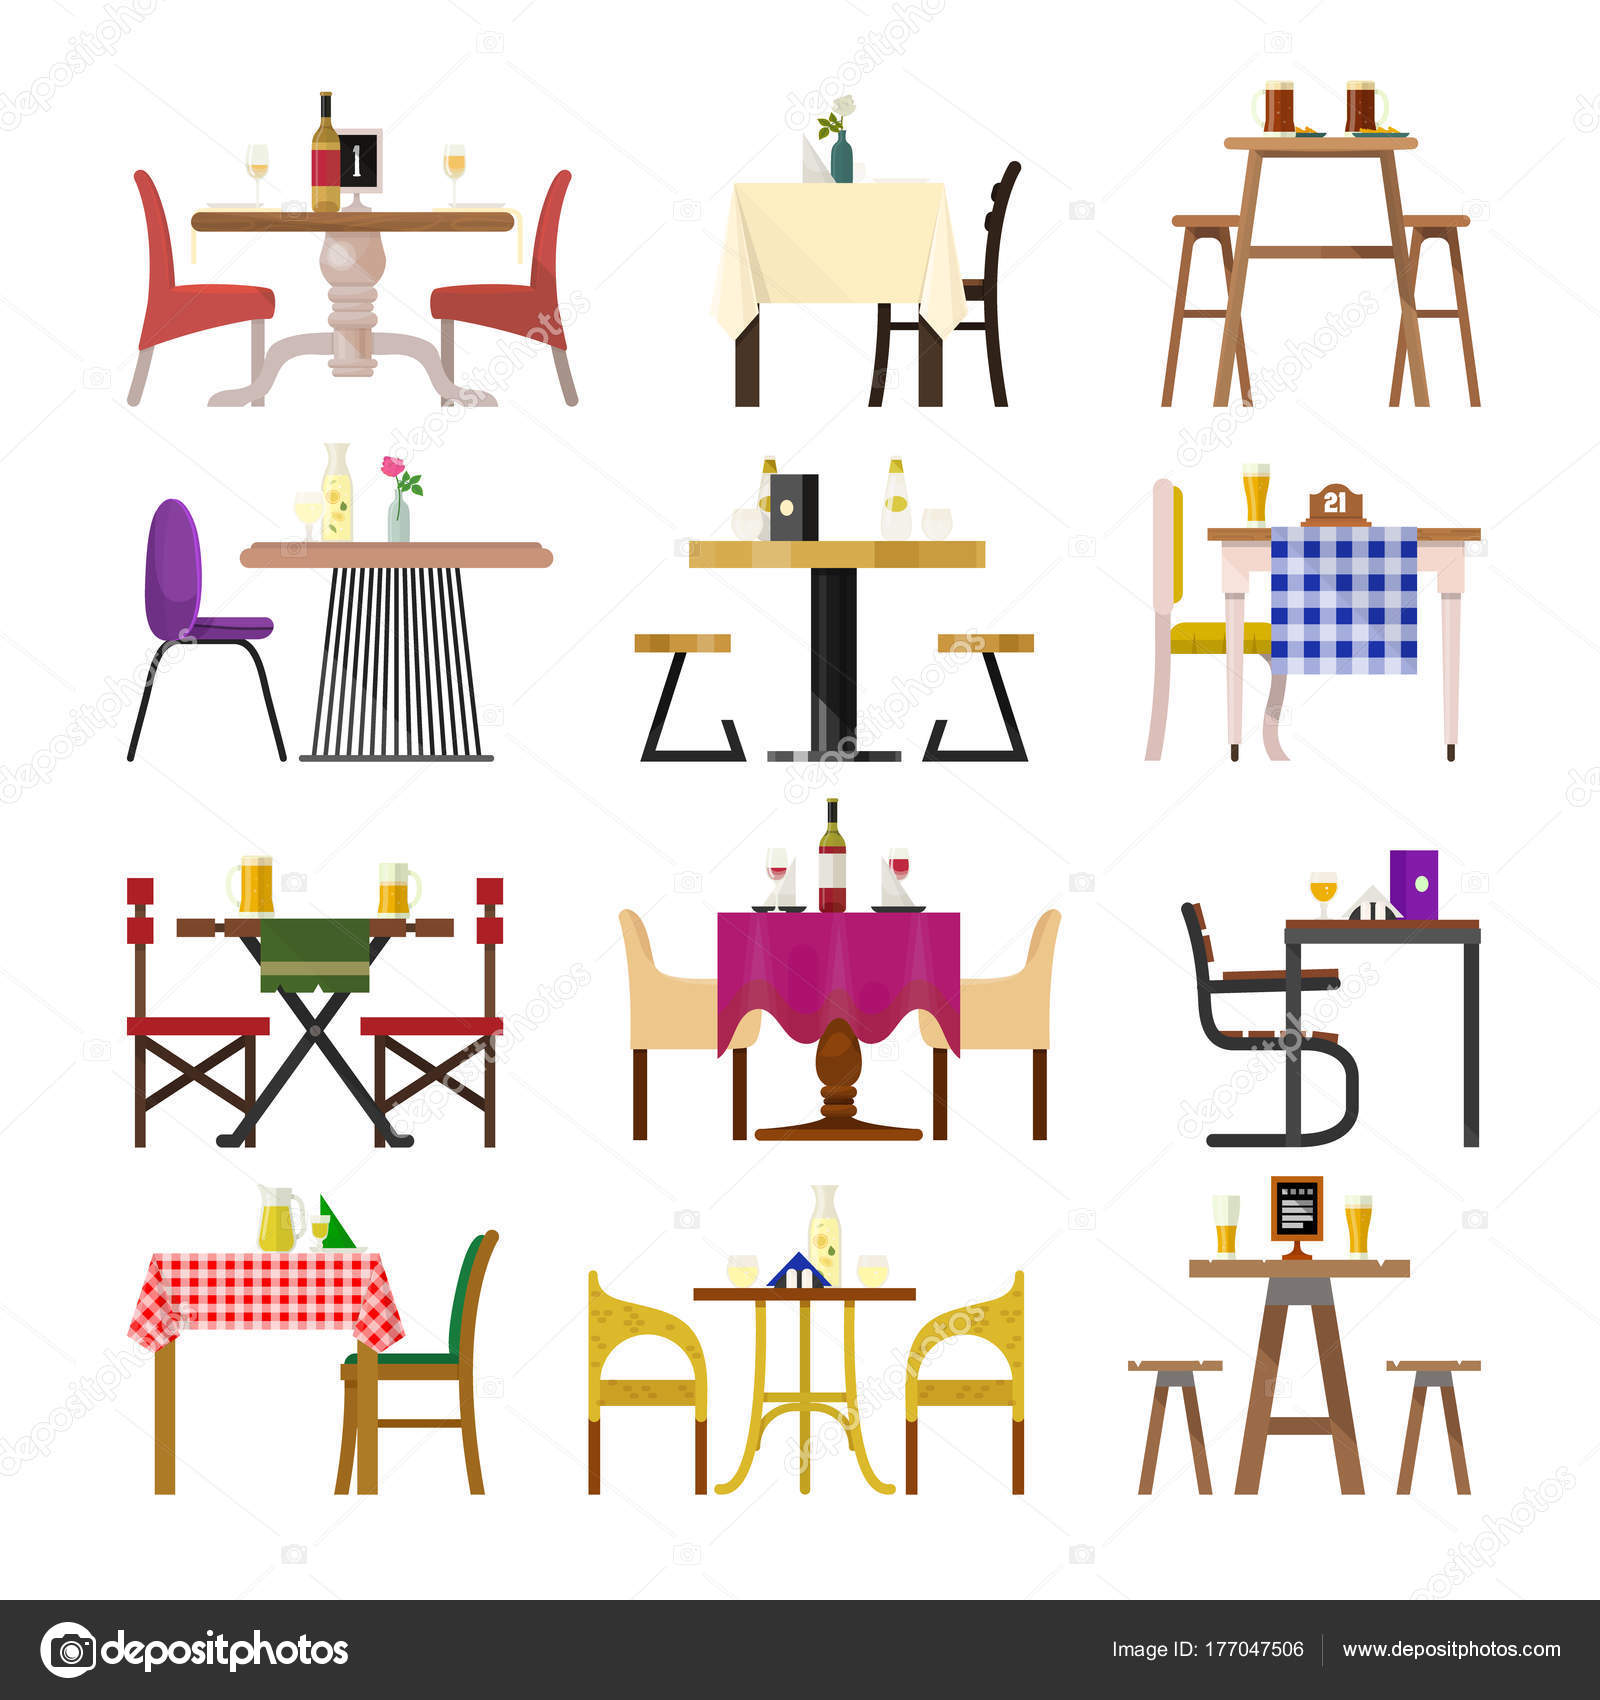 Cafe tables in restaurant setting vector dining furniture table and chair for romantic lunch dinner date  sc 1 st  Depositphotos & Cafe tables in restaurant setting vector dining furniture table and ...